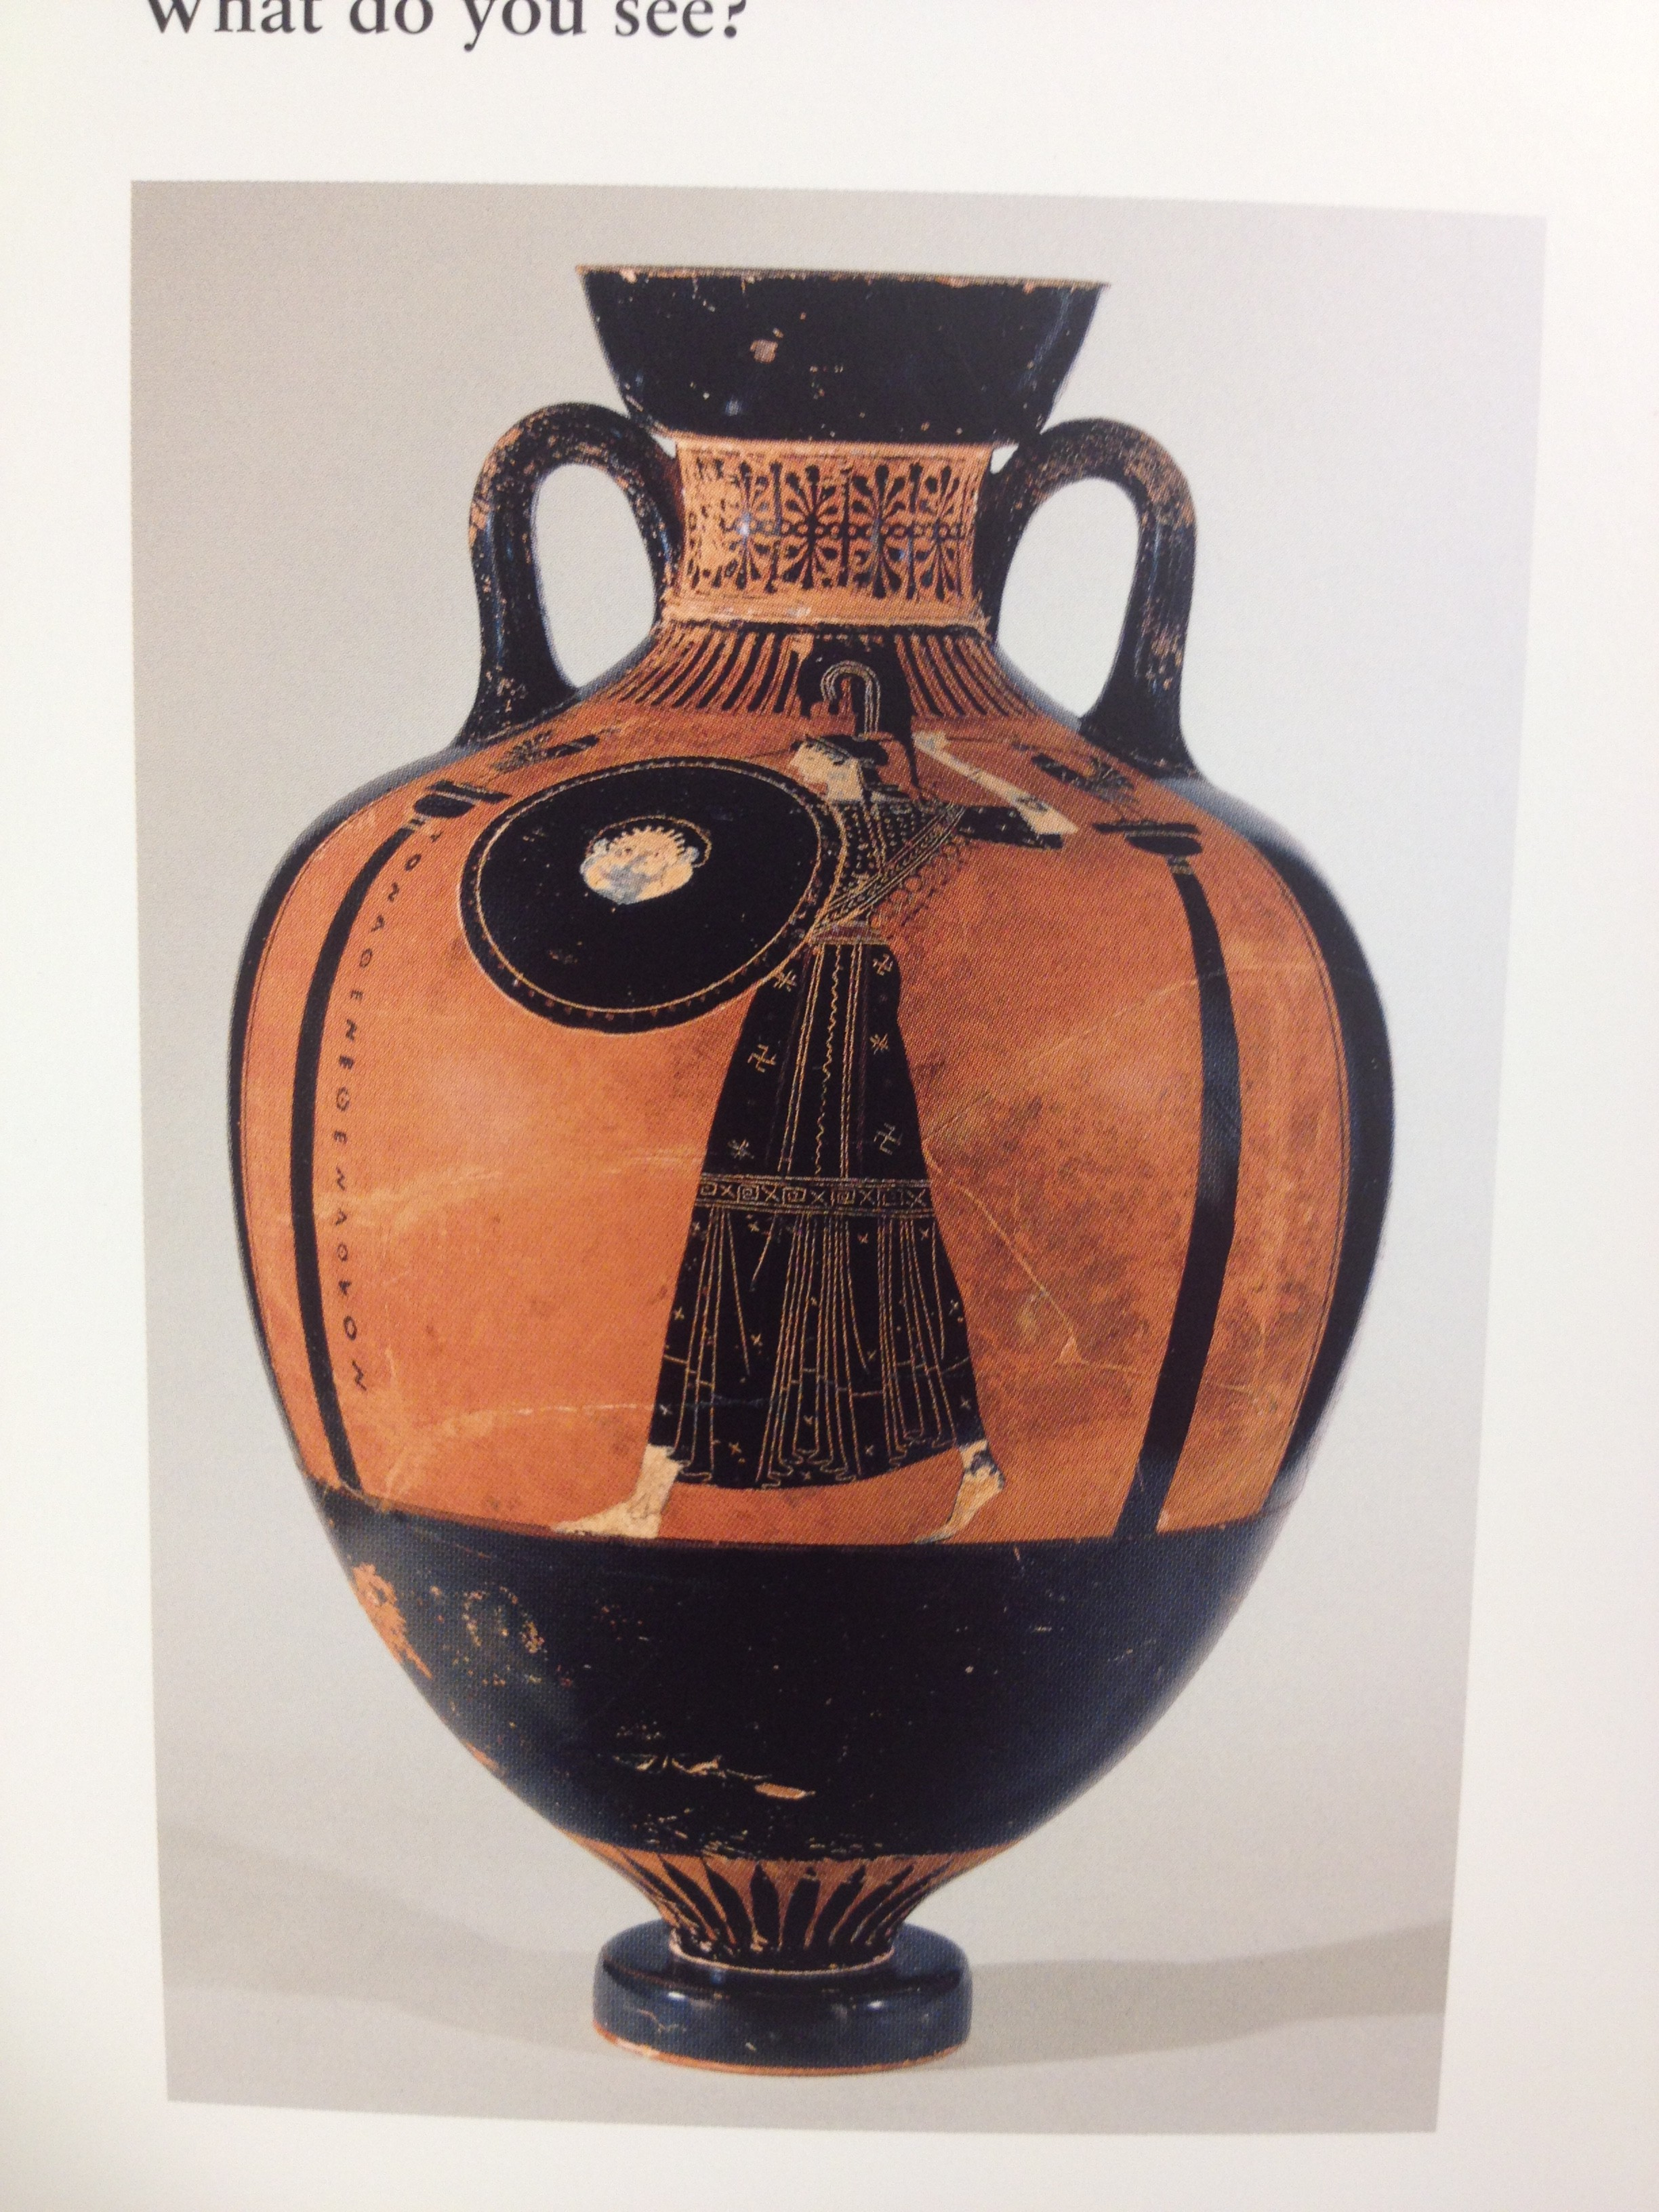 Drawn vase greek pottery Classroom the you Spina's How